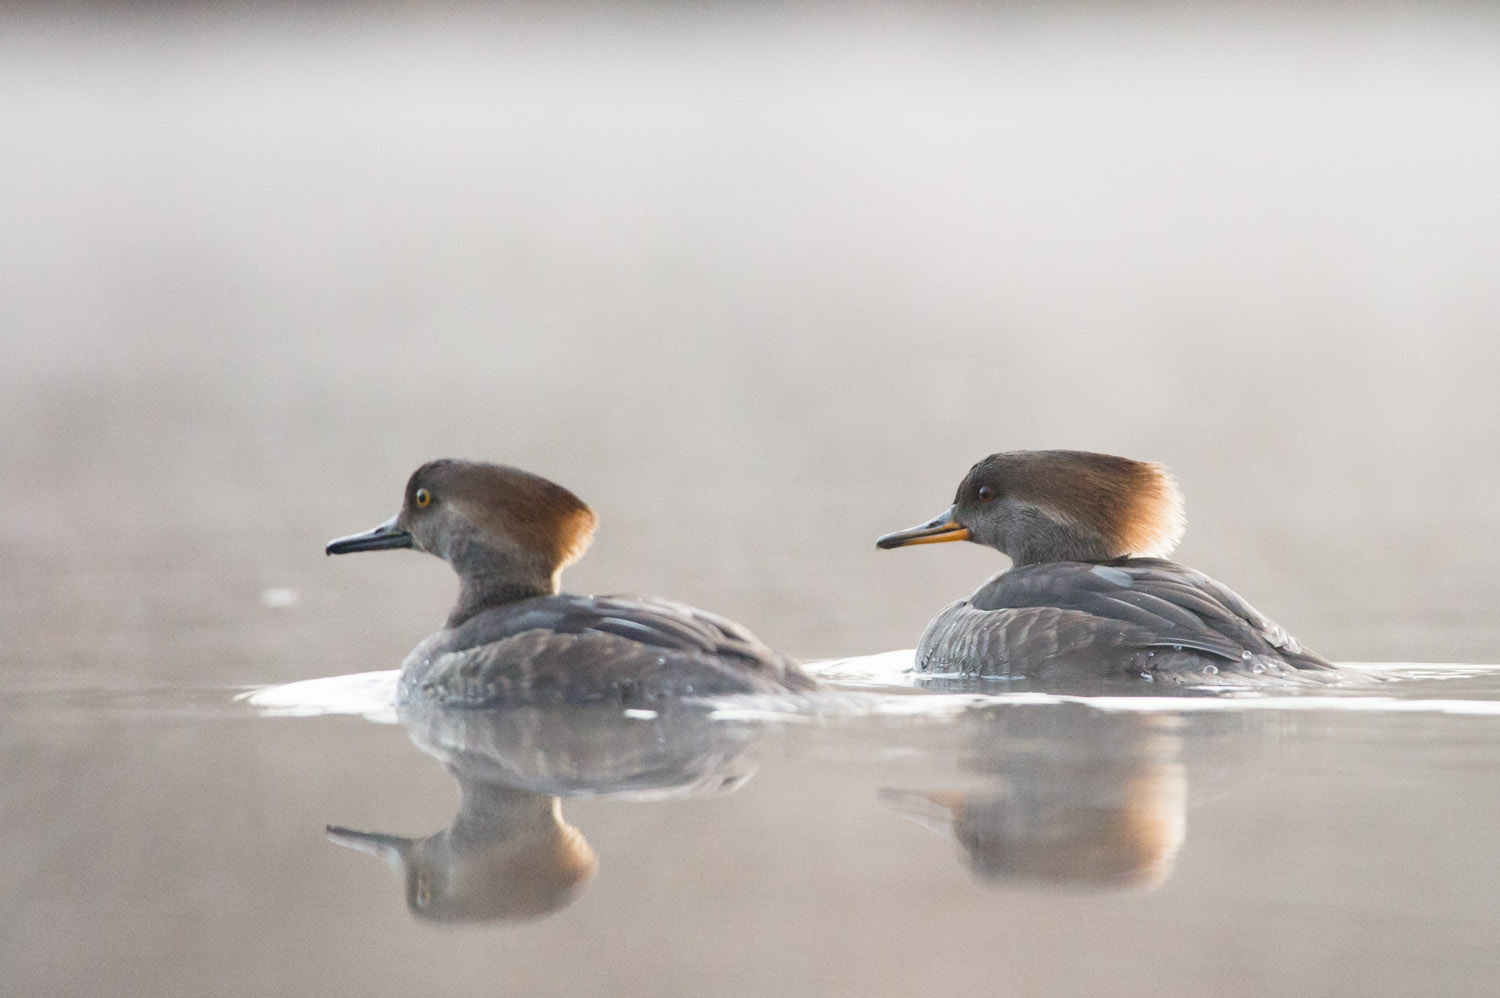 A juvenile male (left) and female Hooded Merganser